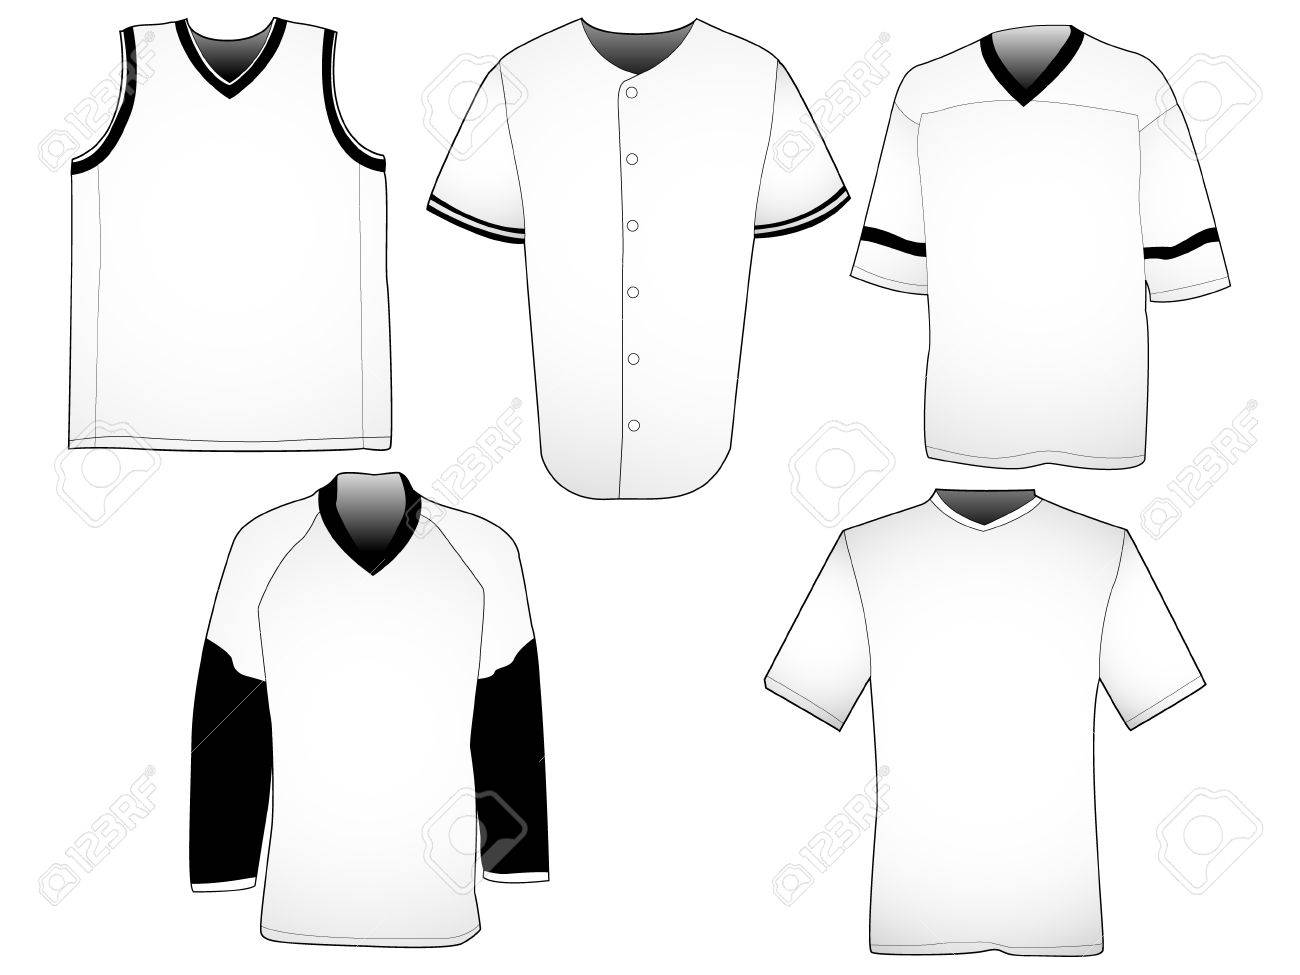 Design t shirts of your own - Design T Shirt By Own Set Of Five Jerseys From Different Sports Your Own Design